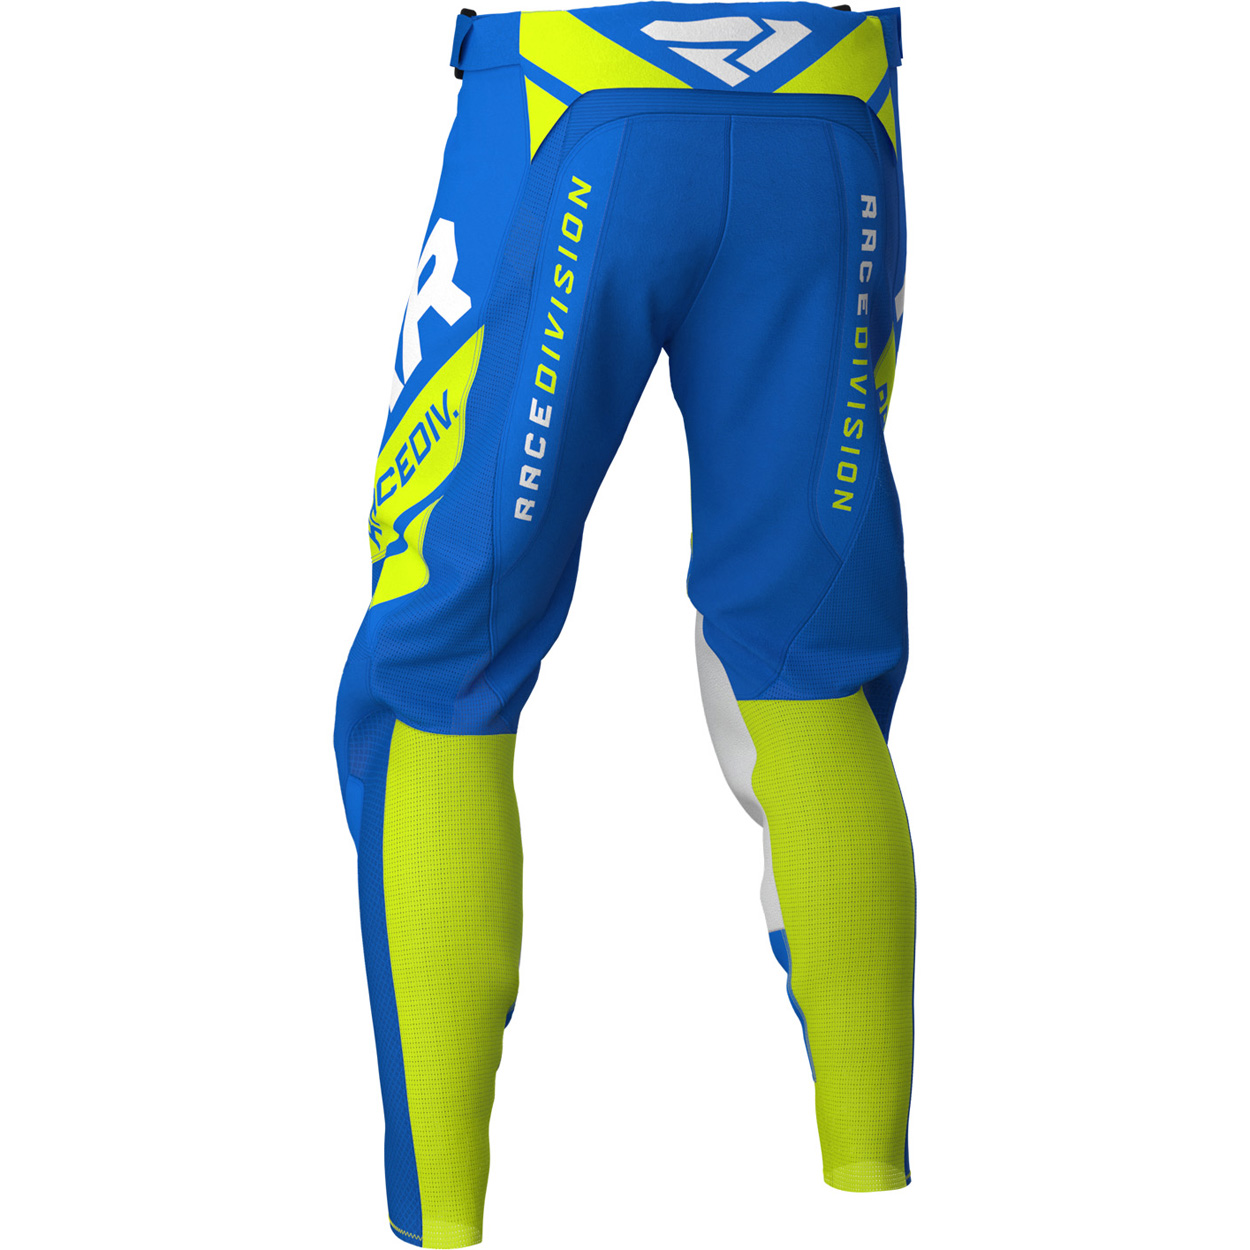 203340-4065 FXR RACING 2020 Revo Motocross Pant Blue Hi-Vis Yellow White Pantalon Enduro Hose Cross Broek